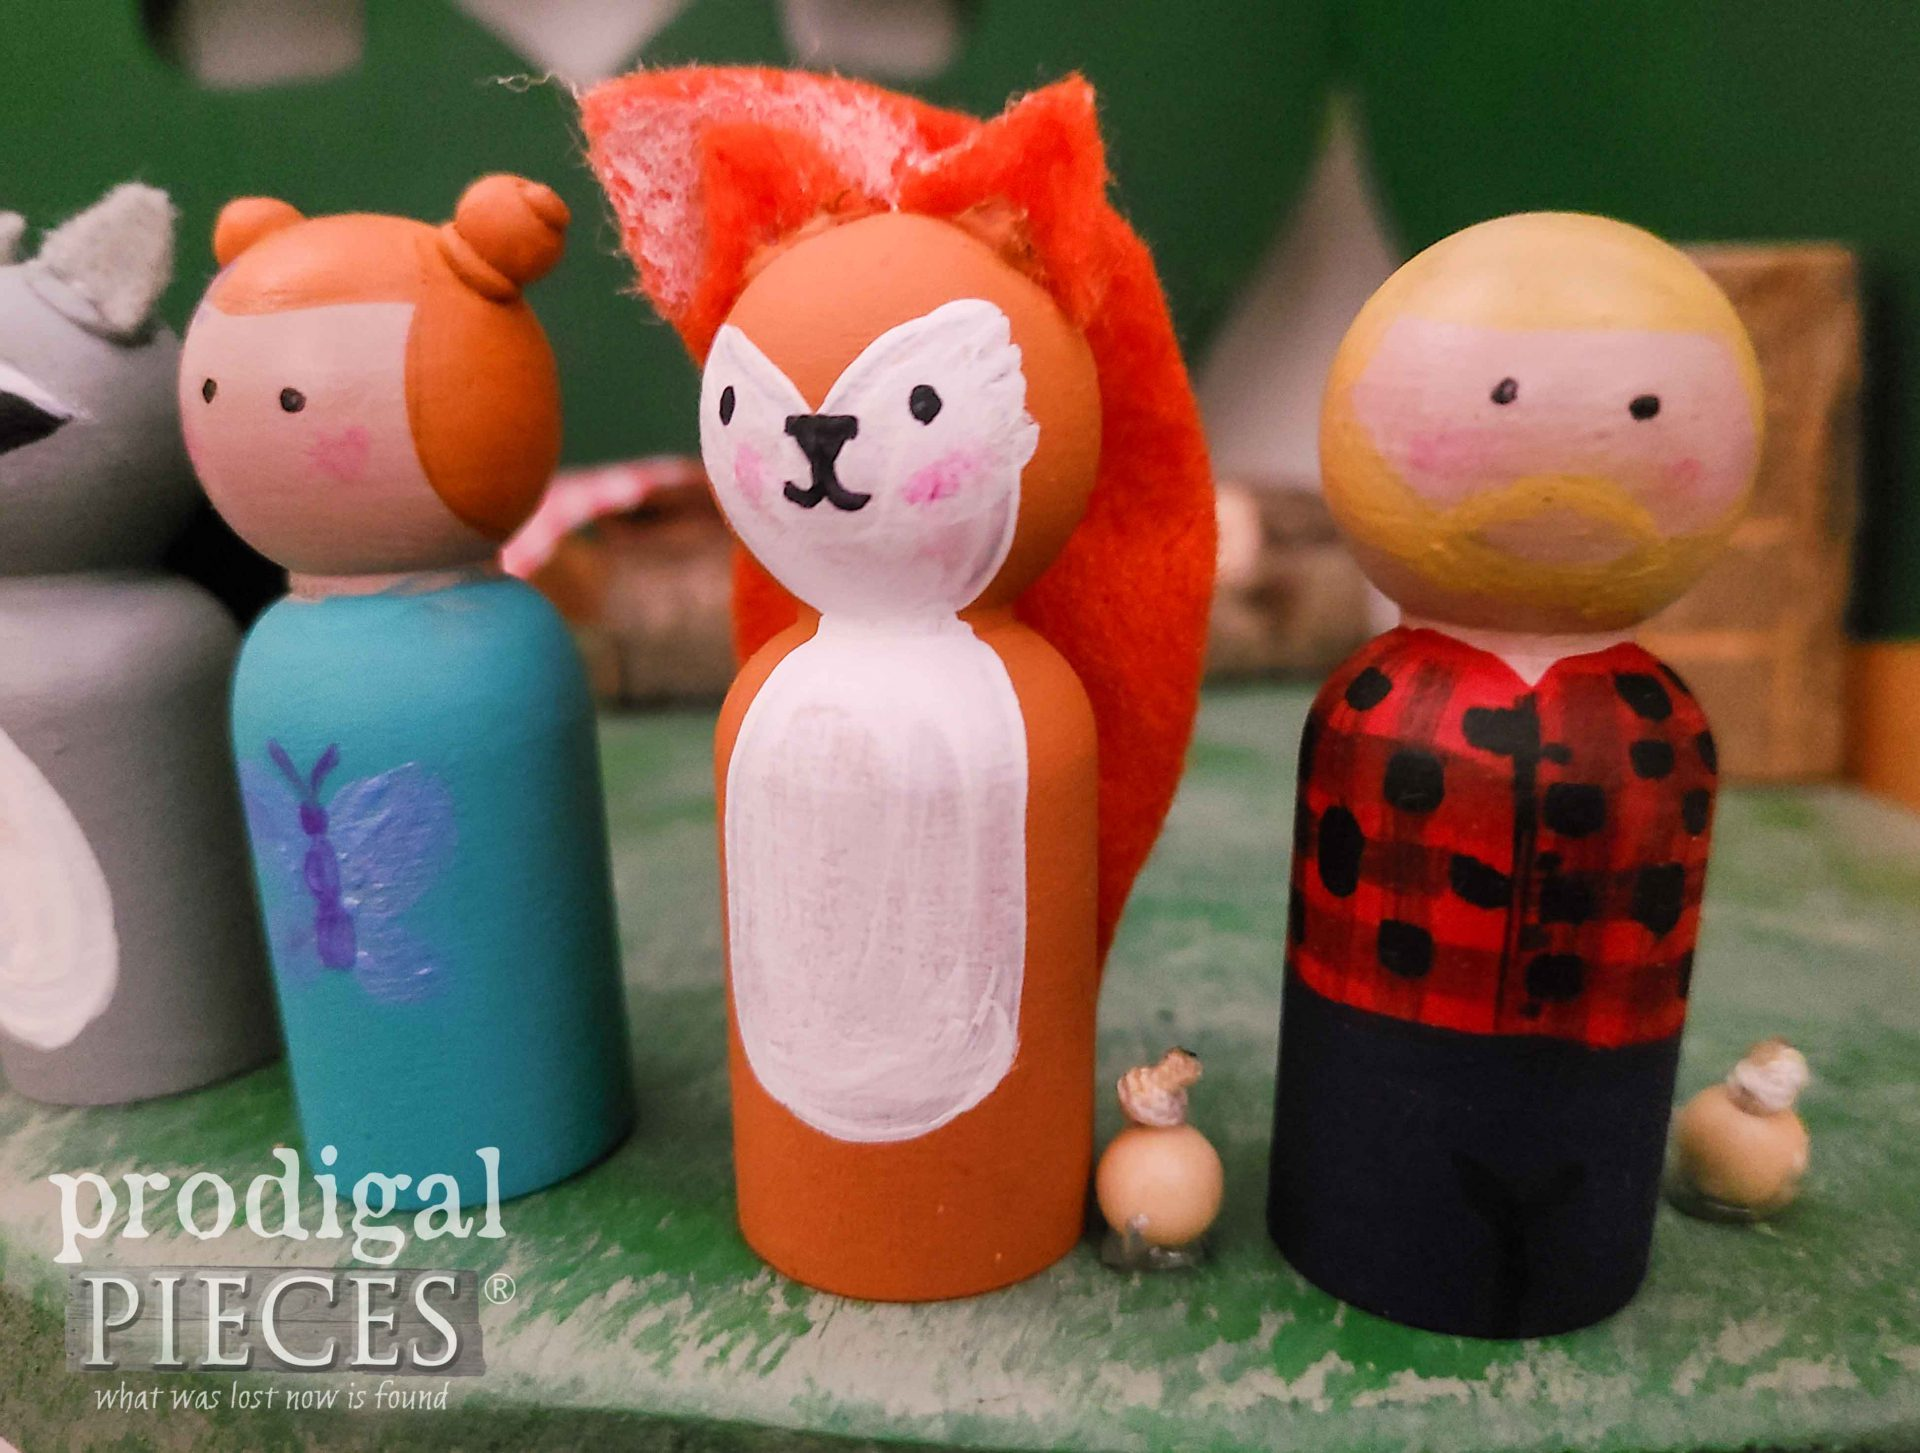 Hand-Painted Woodland Dolls for Upcycled Quilt Rack Treehouse Playset by Larissa of Prodigal Pieces | prodigalpieces.com #prodigalpieces #diy #fun #toys #handmade